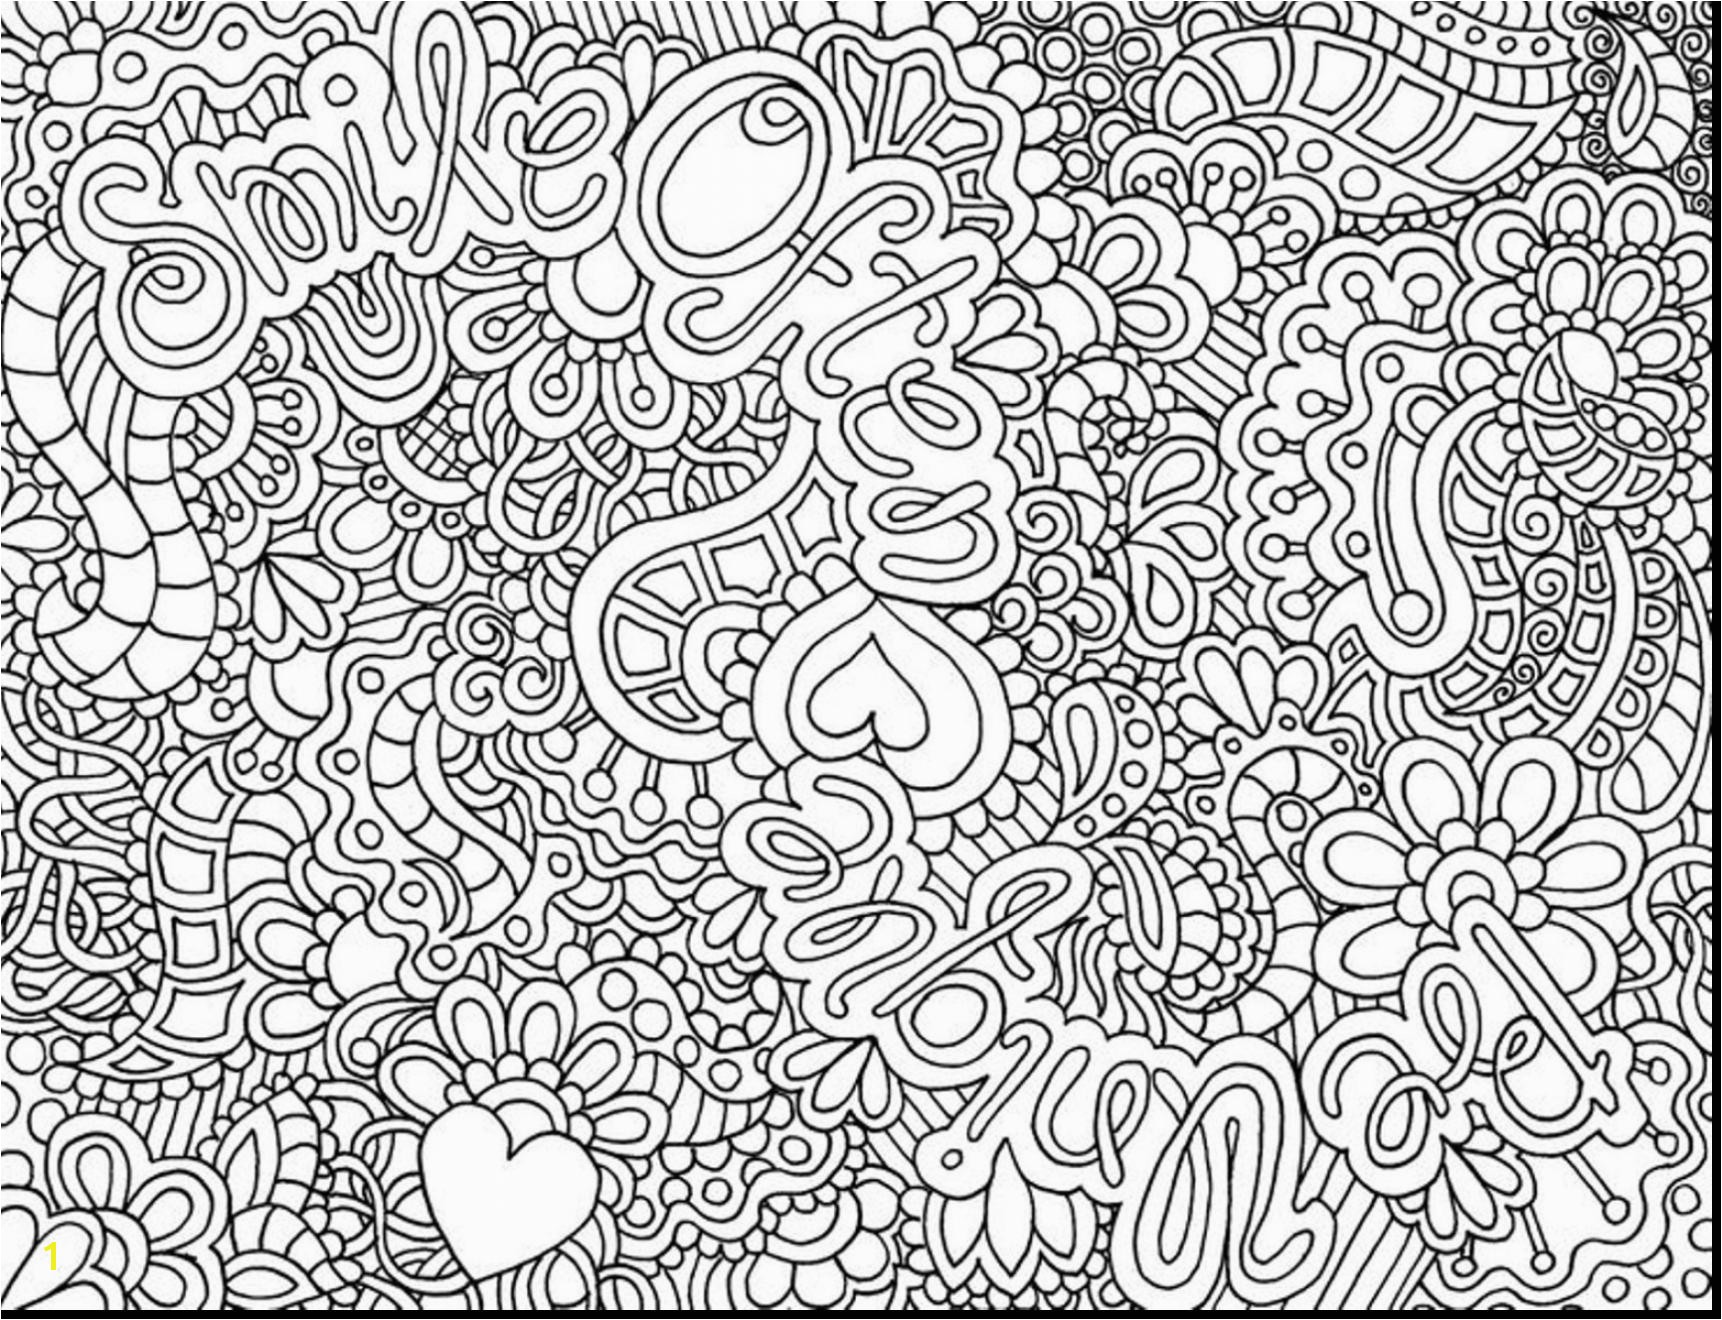 18awesome Hard Coloring Pages For Adults More Image Ideas